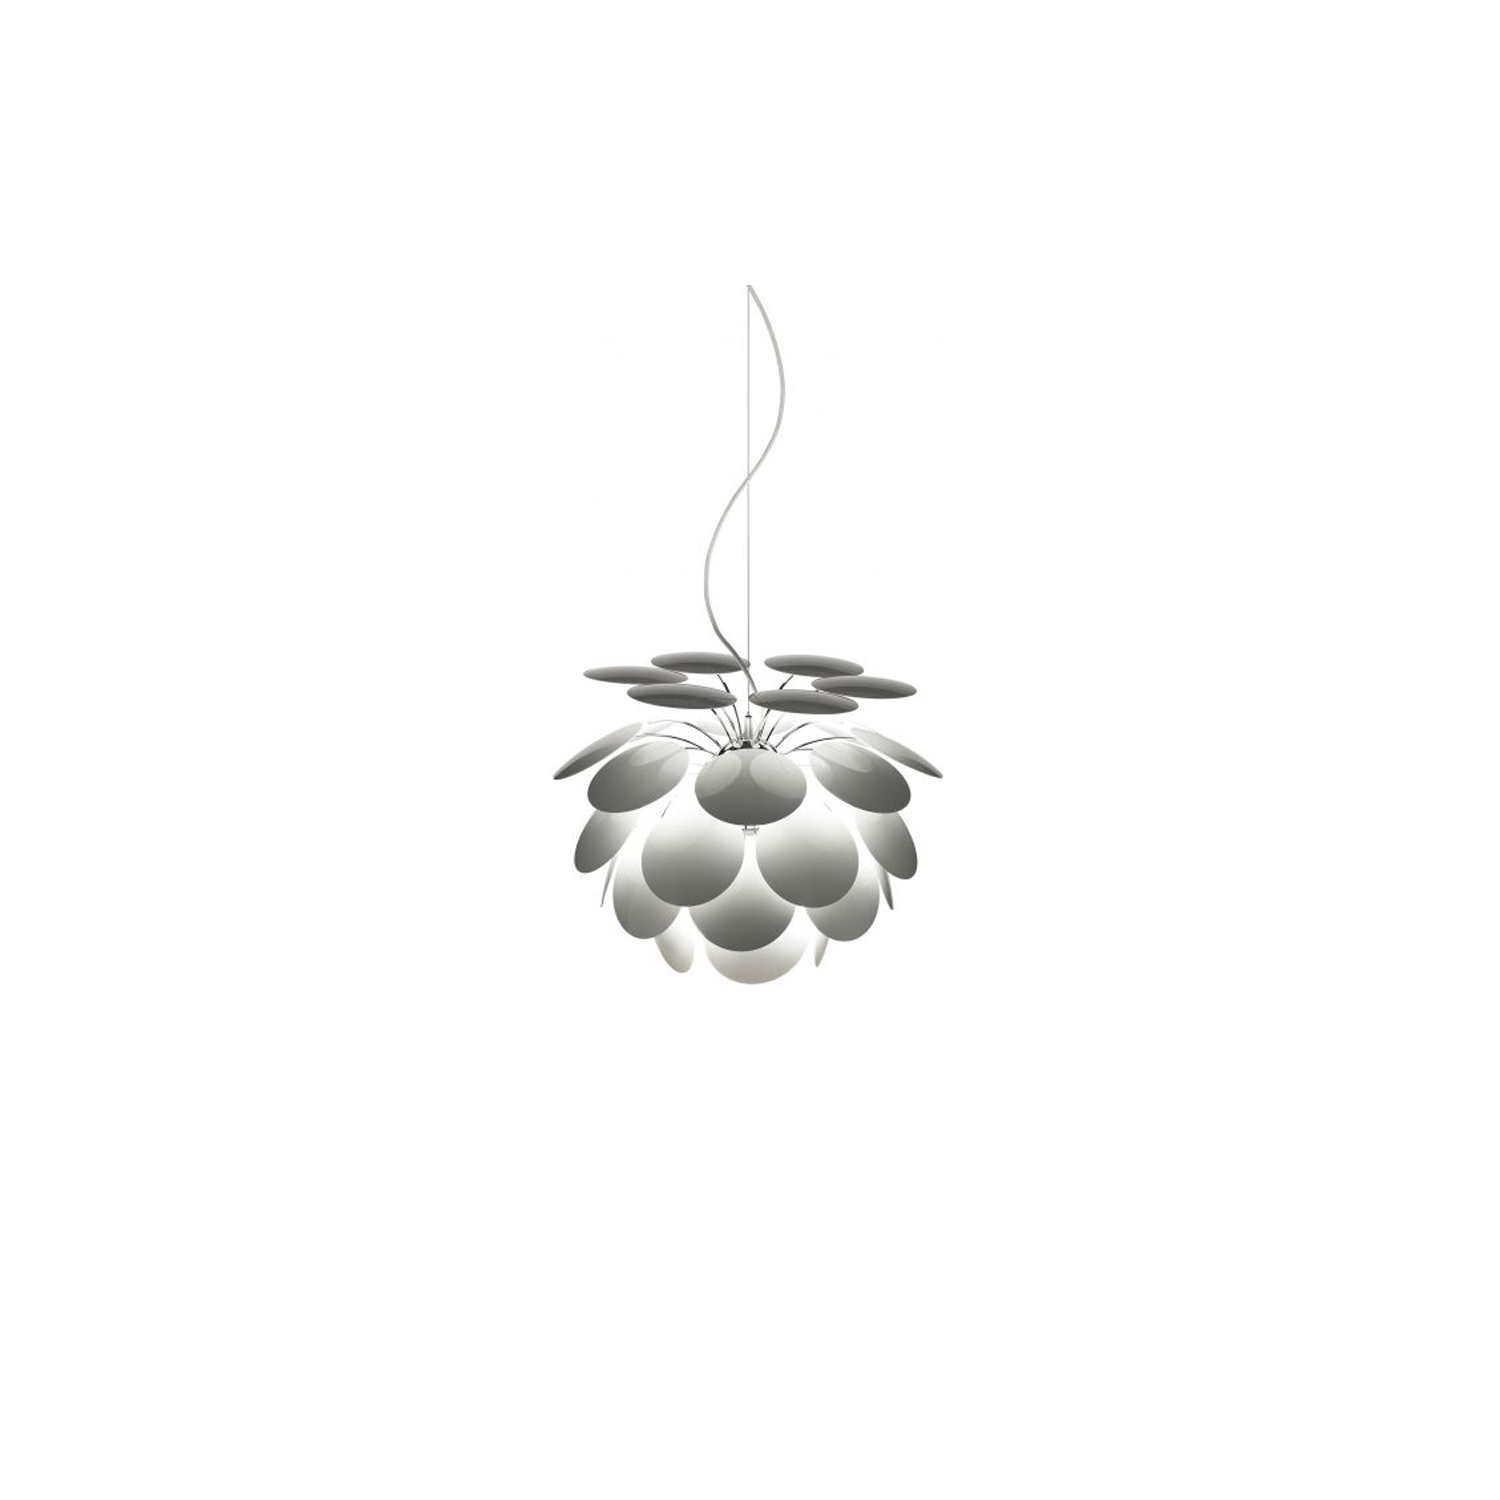 Discoco 132 Pendant Light - Exuberant even when turned off, the richness of the light issuing from the Discocó lamp provides direct downward illumination along with a dramatic play of lights and soft shadows.  Its detailed study of incident light and light that bounces off of both sides of the 35 disks provide the lamp with an appealing gradation of light nuances and depth. Further reflections dance off the chrome-covered sphere at the core, where the disks are anchored.  When the light is turned off, it retains its attractive presence, hinting at the expansion of energy that is fully expressed when it is turned on.  Two new tones, beige and grey, have been added to the existing color range, this time with a matte finish. A new 68 cm diameter is also available, making a total of five sizes to cover a host of applications. | Matter of Stuff